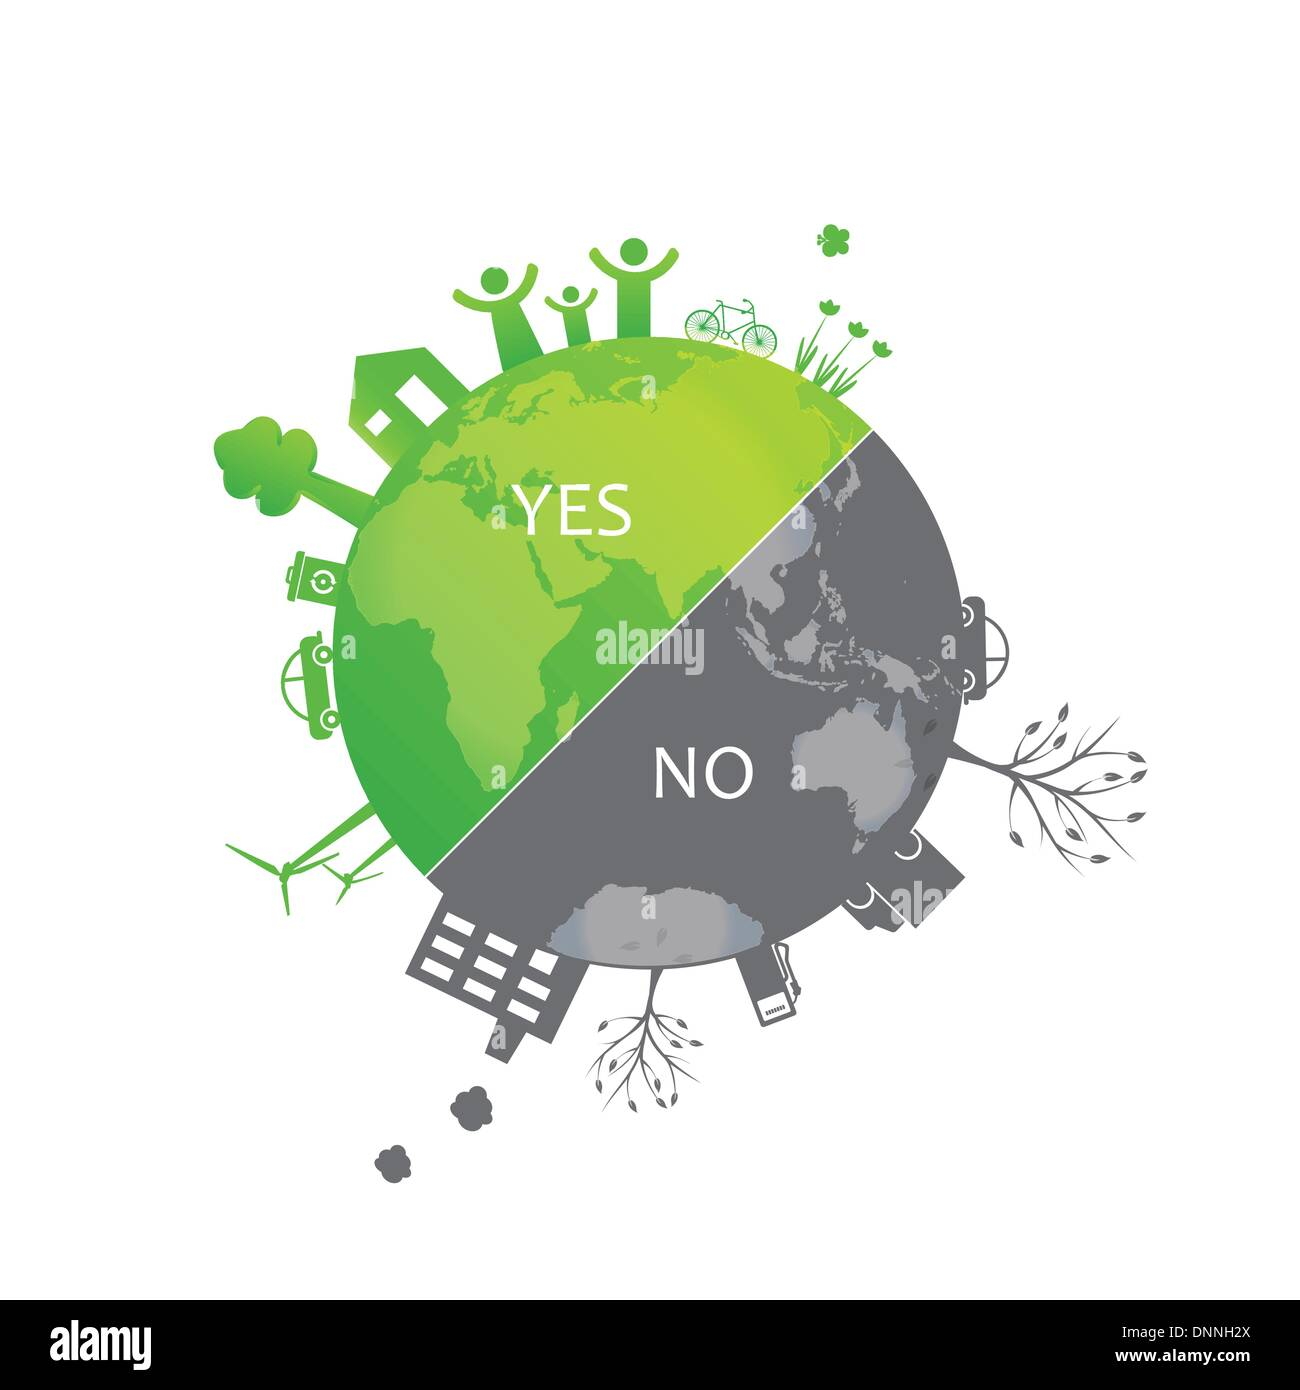 Protect the earth environment symbols on clean or dirty earth protect the earth environment symbols on clean or dirty earth biocorpaavc Choice Image